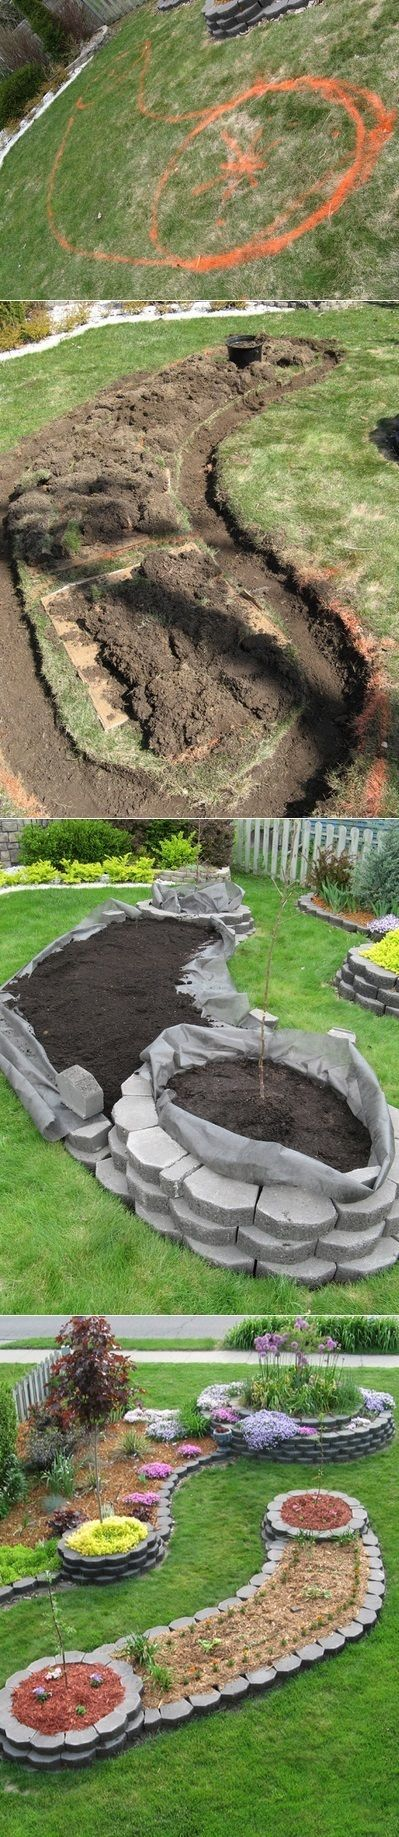 Alternative Gardning: Island bed garden design - Gardening For You